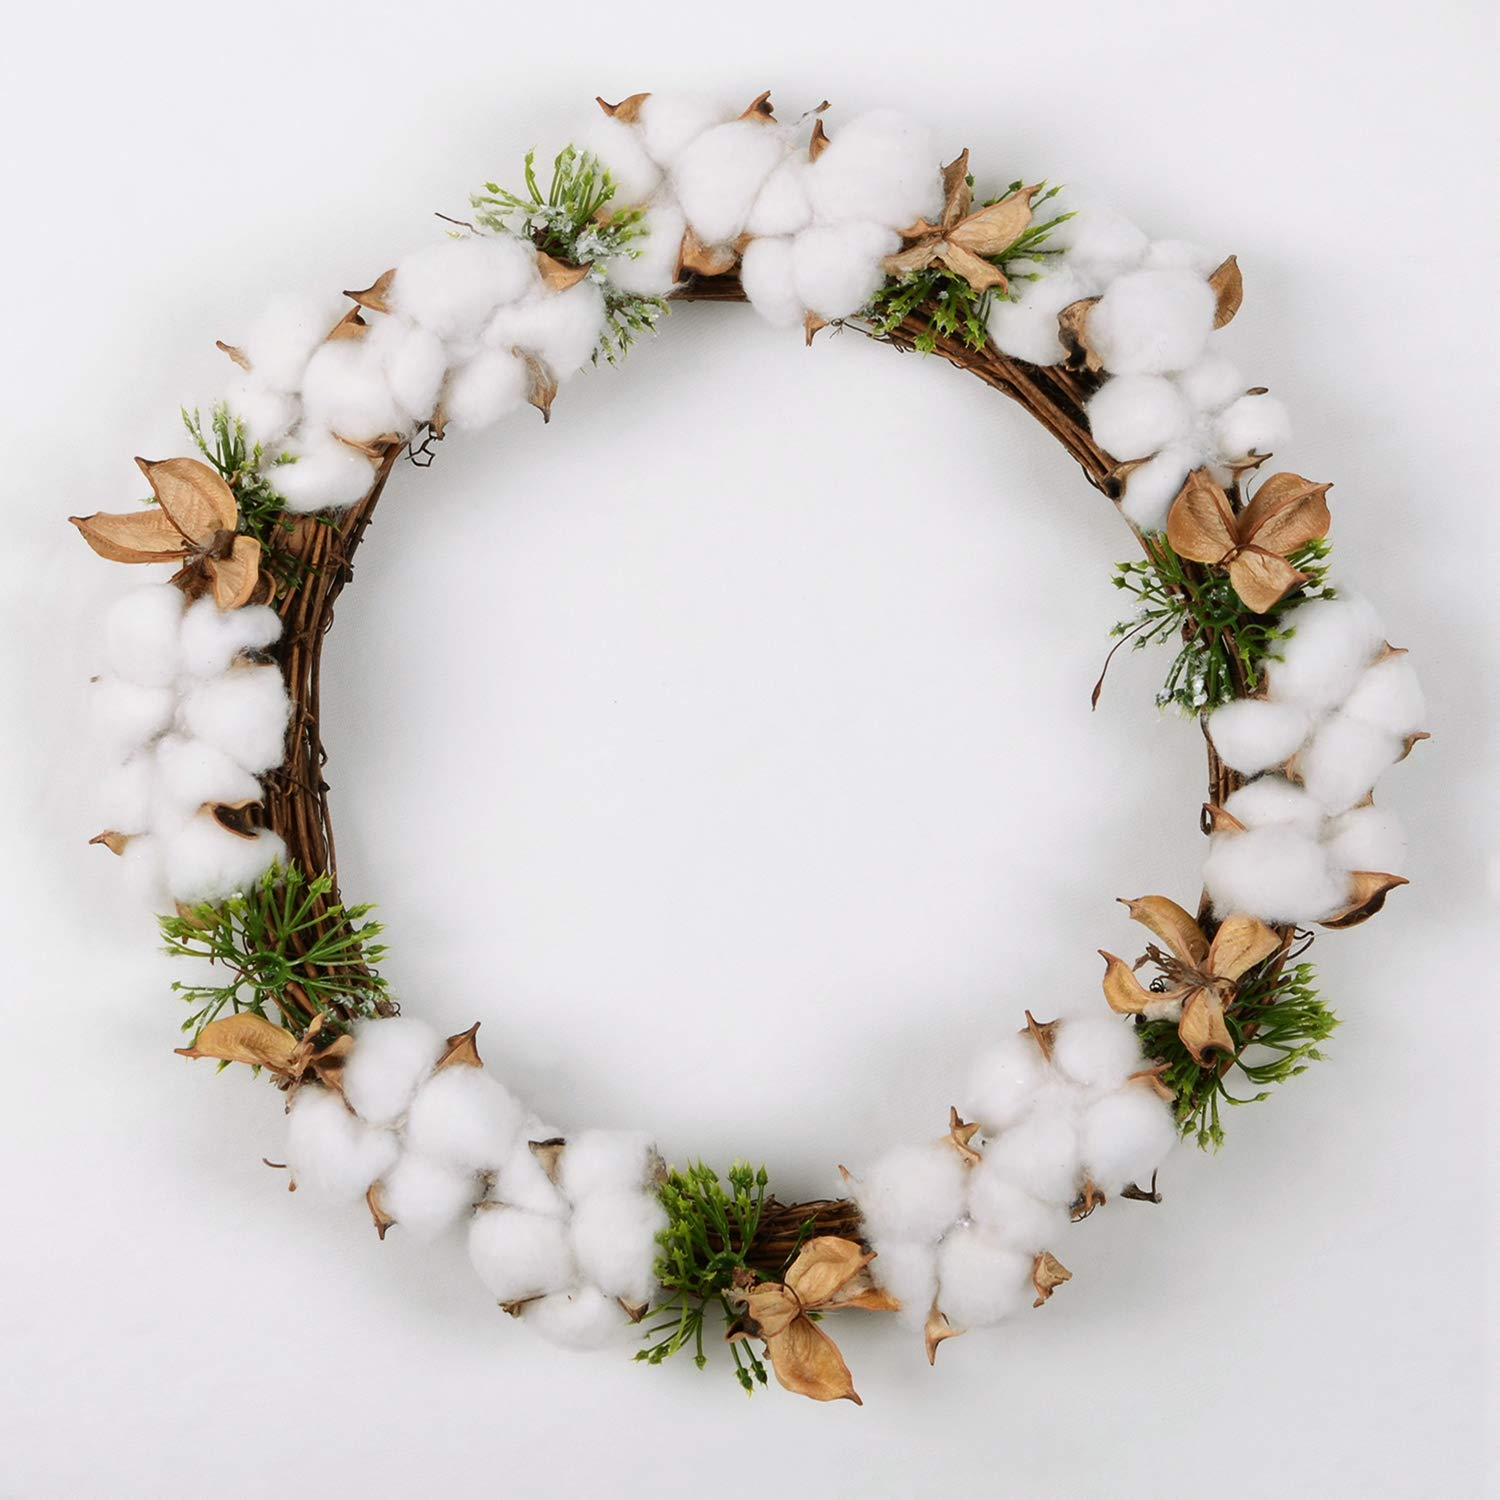 Lvydec Real Cotton Wreath, 13.5 Inch Decorative Wreath with Full and Empty Cotton Bolls for Front Door Farmhouse Wedding Centerpiece